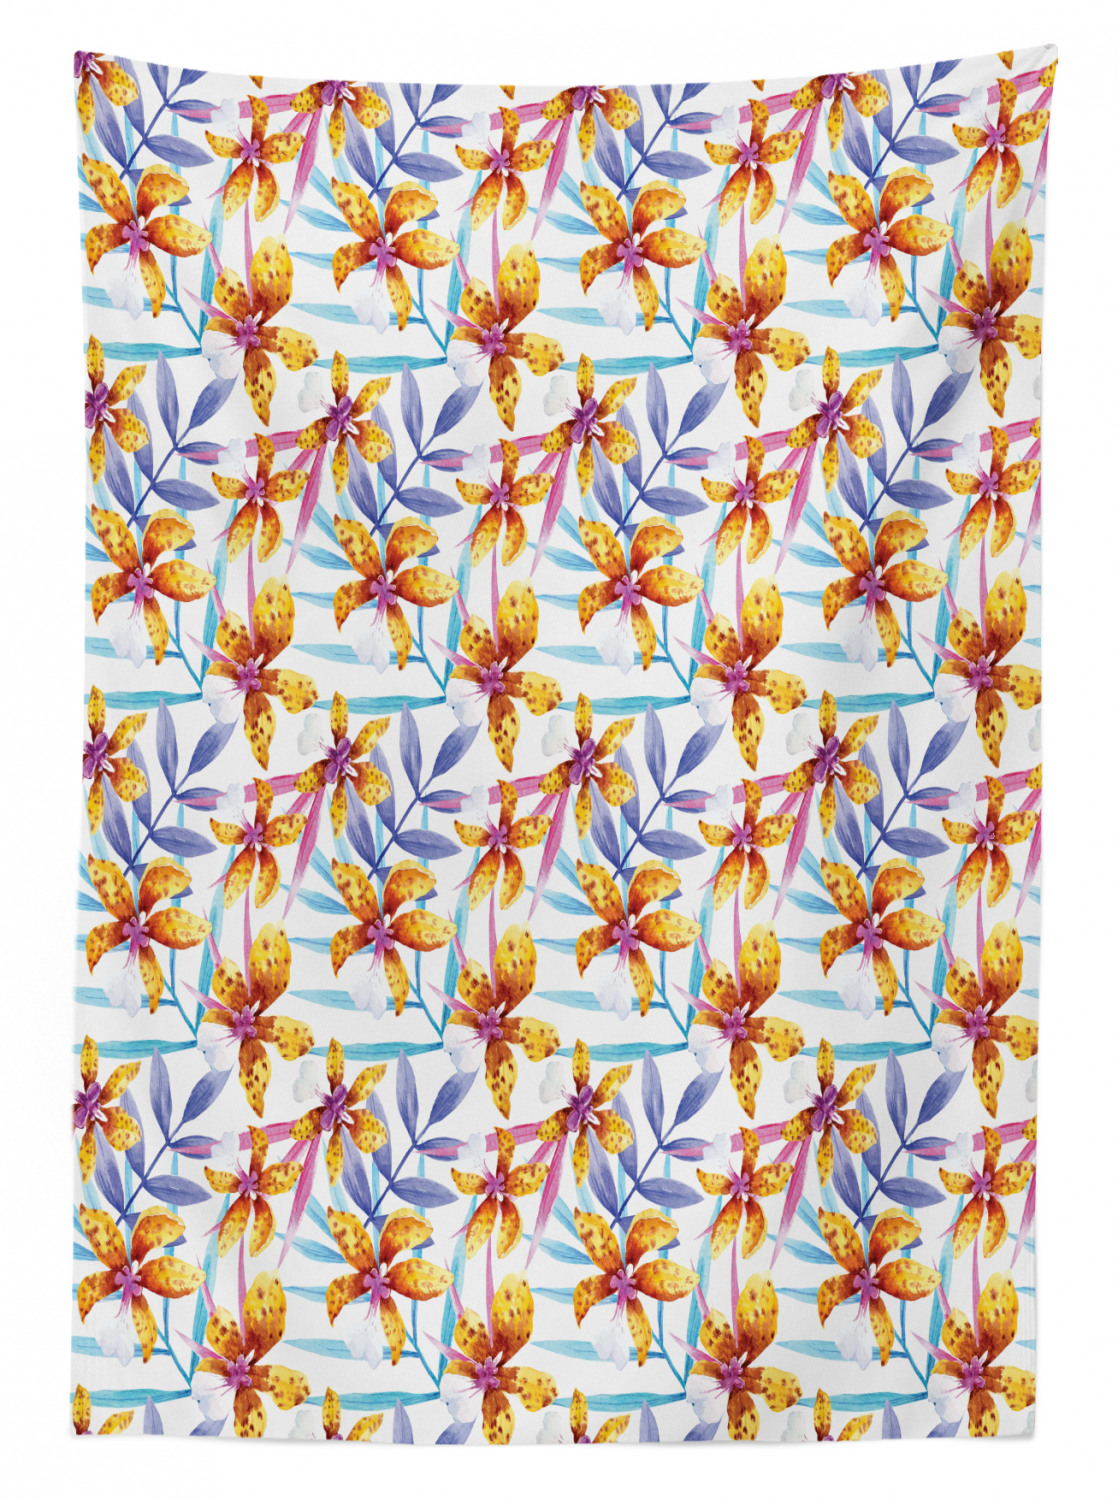 Flowers Theme Outdoor Picnic Tablecloth in 3 Sizes Washable Waterproof